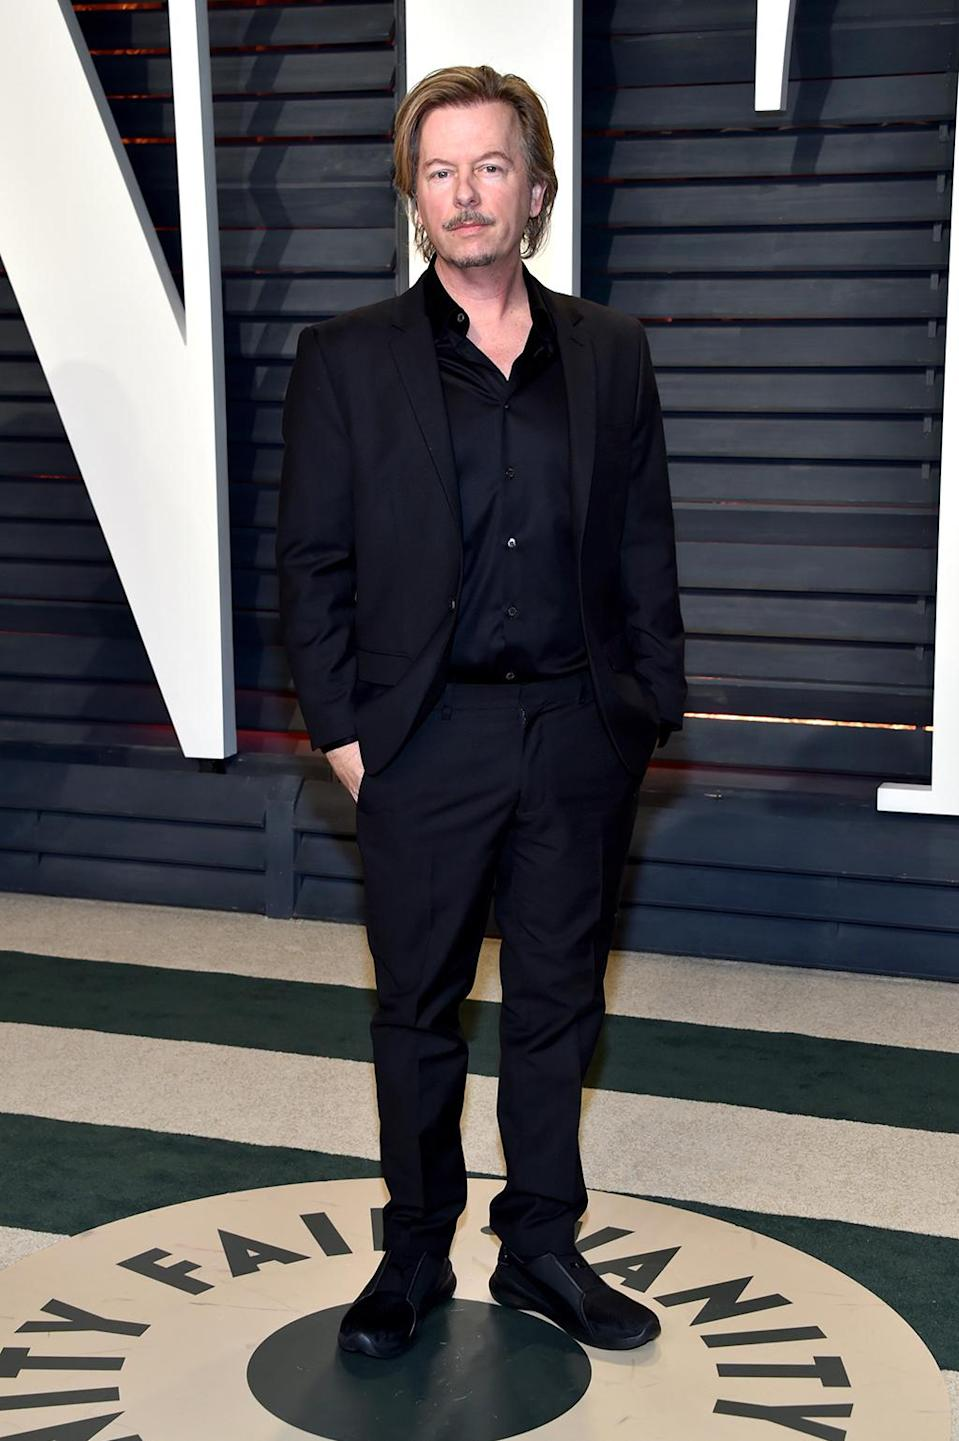 <p>David Spade attends the 2017 Vanity Fair Oscar Party hosted by Graydon Carter at Wallis Annenberg Center for the Performing Arts on February 26, 2017 in Beverly Hills, California. (Photo by Pascal Le Segretain/Getty Images) </p>